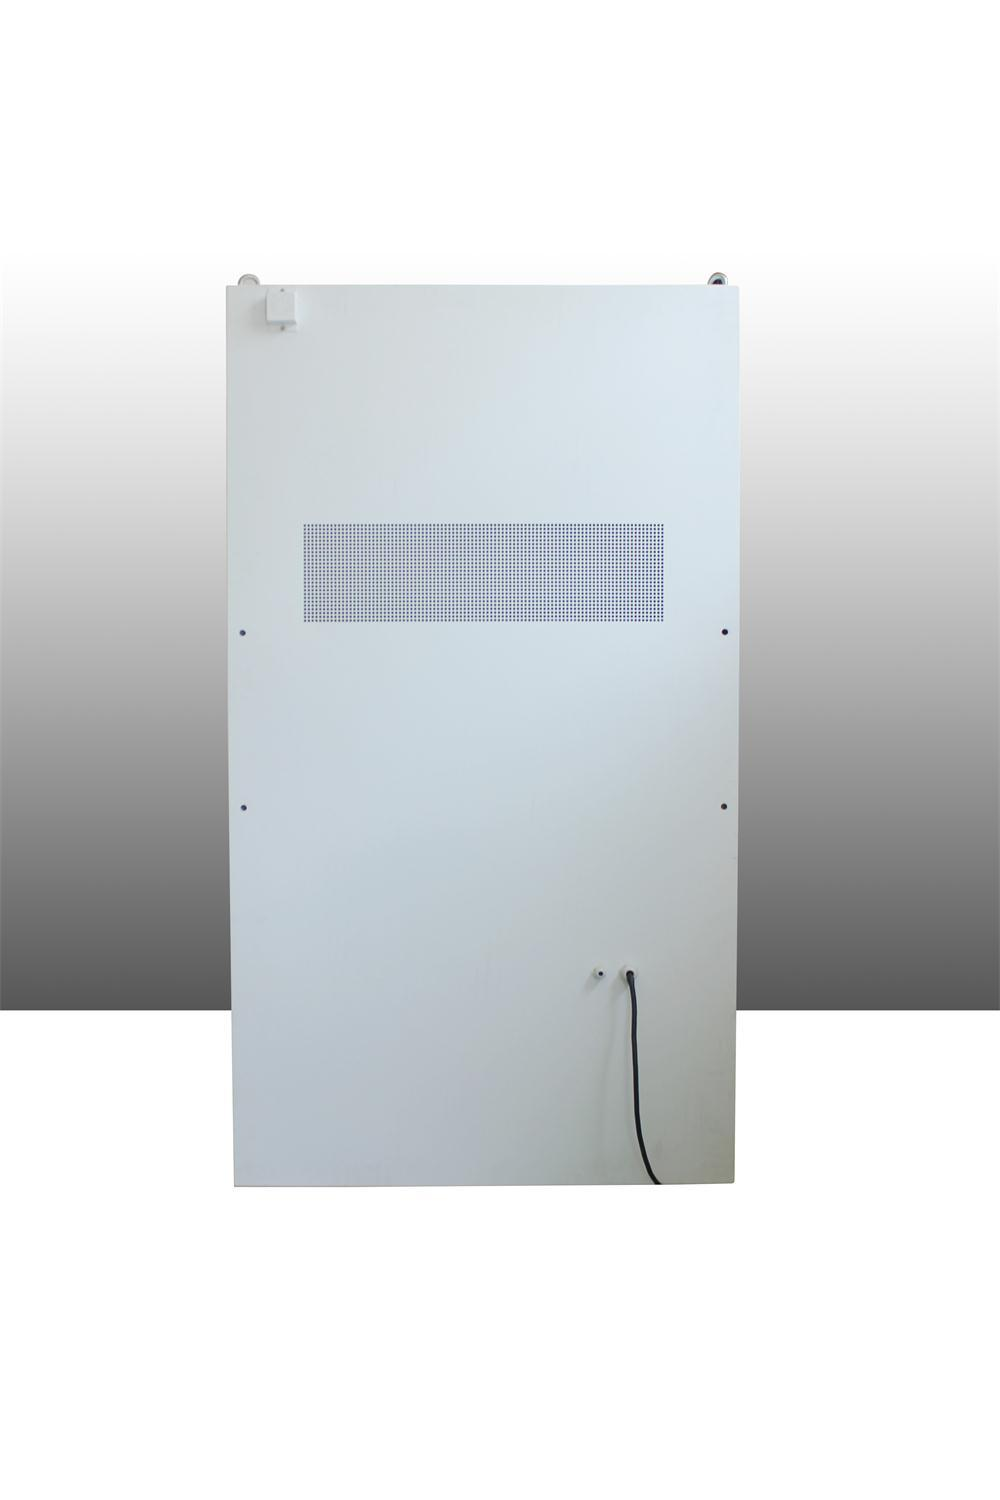 55-Inch Outdoor Wall-Mounted LCD Display with Super Brightness